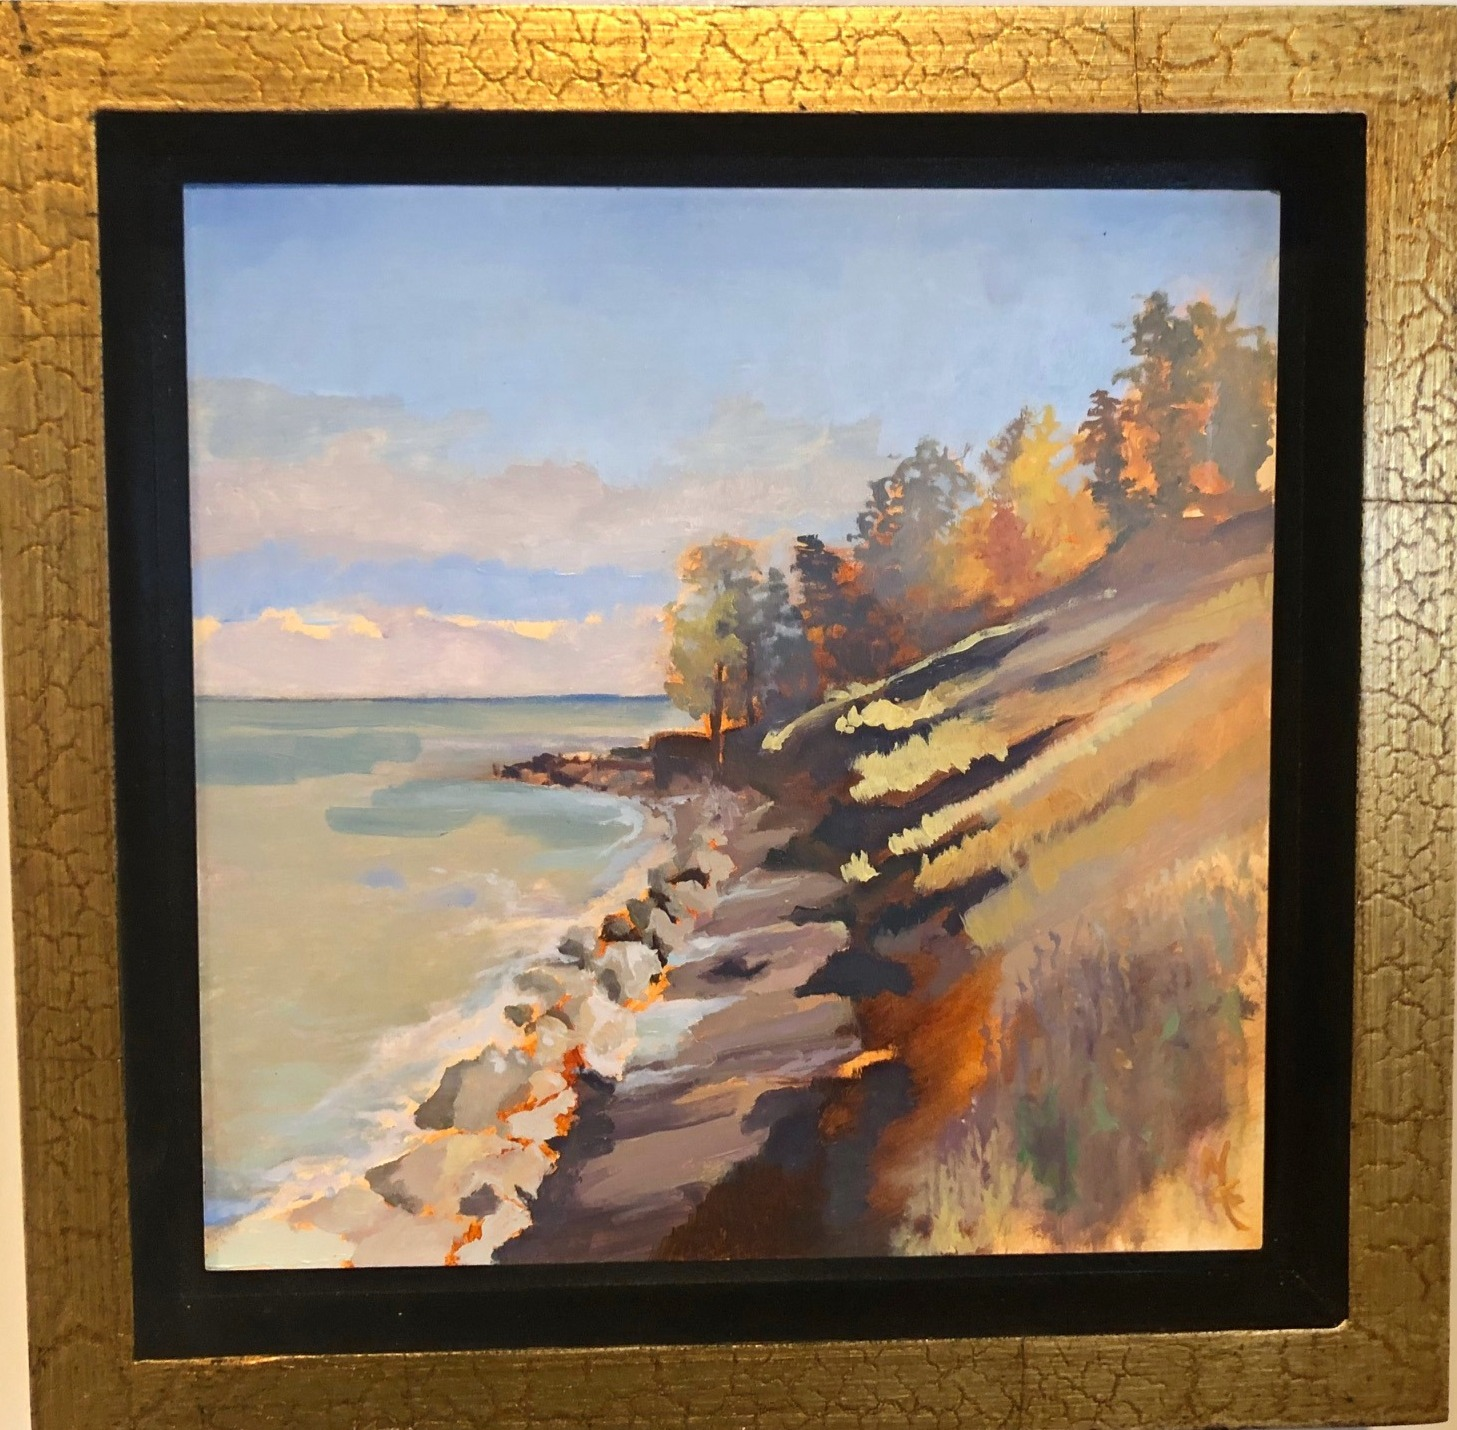 Lake Michigan Oil 10 x 10 Framed (8x8)